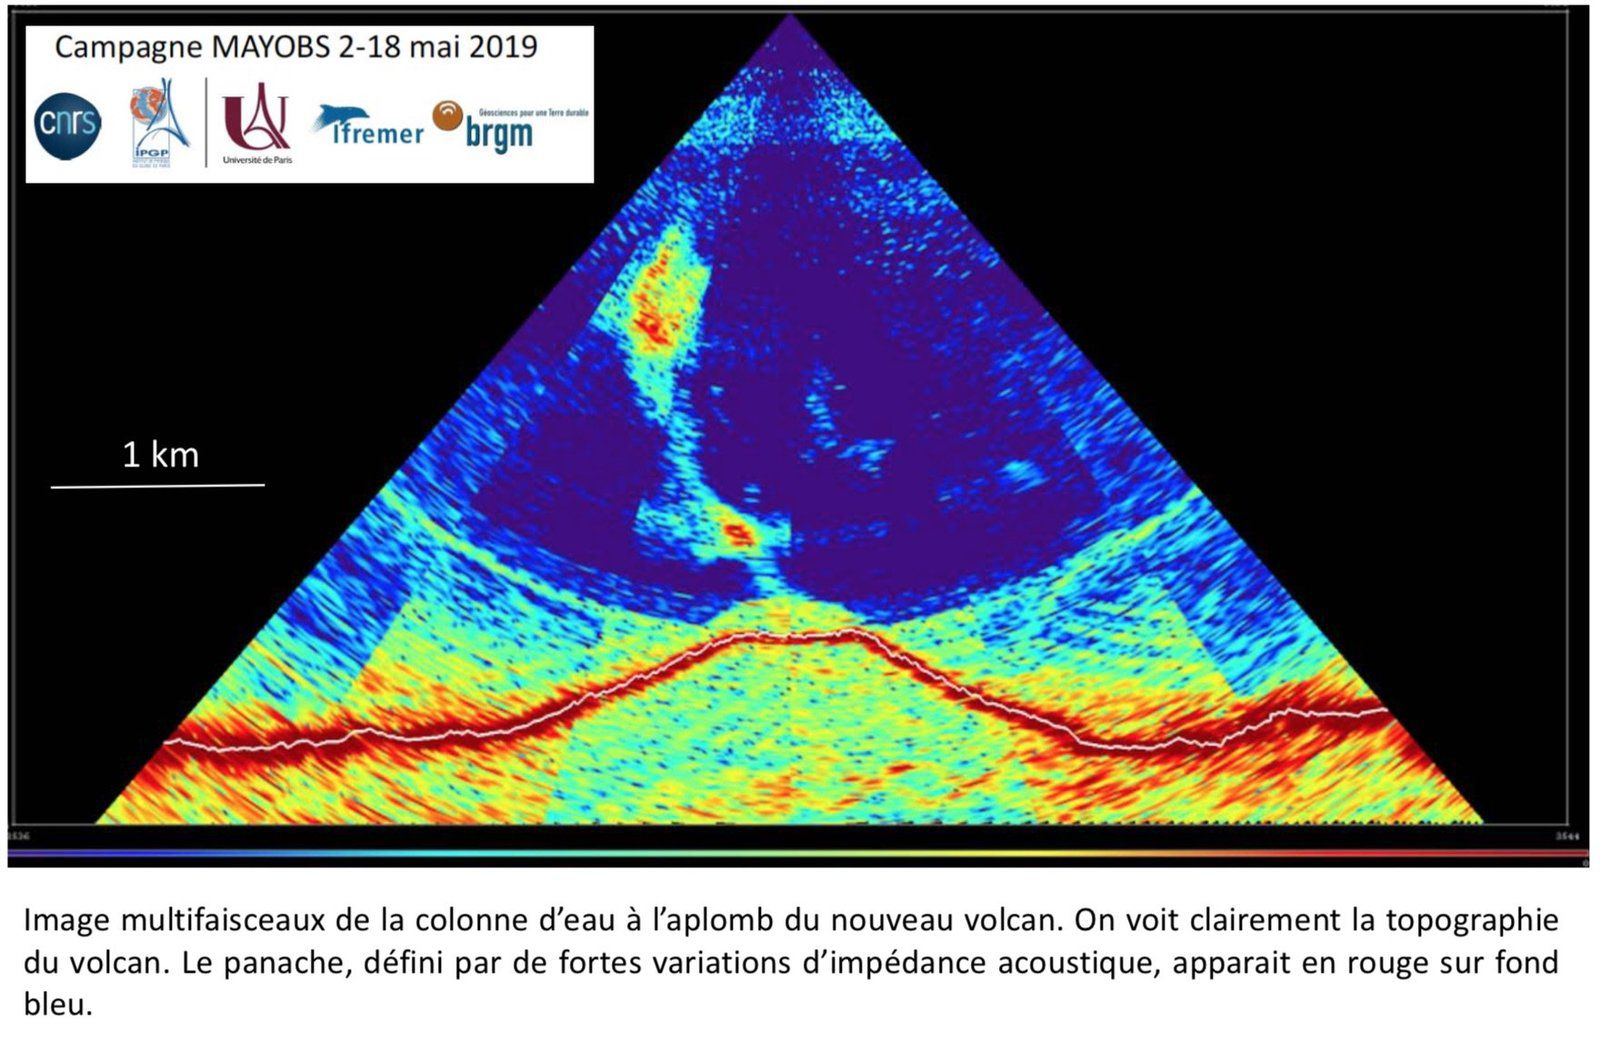 Mayotte - Cross-section view of the new volcano discovered in May 2019 east of Mayotte, with its plume - Doc. via R.Lacassin / Mayobs campaign from May 2 to 18, 2019